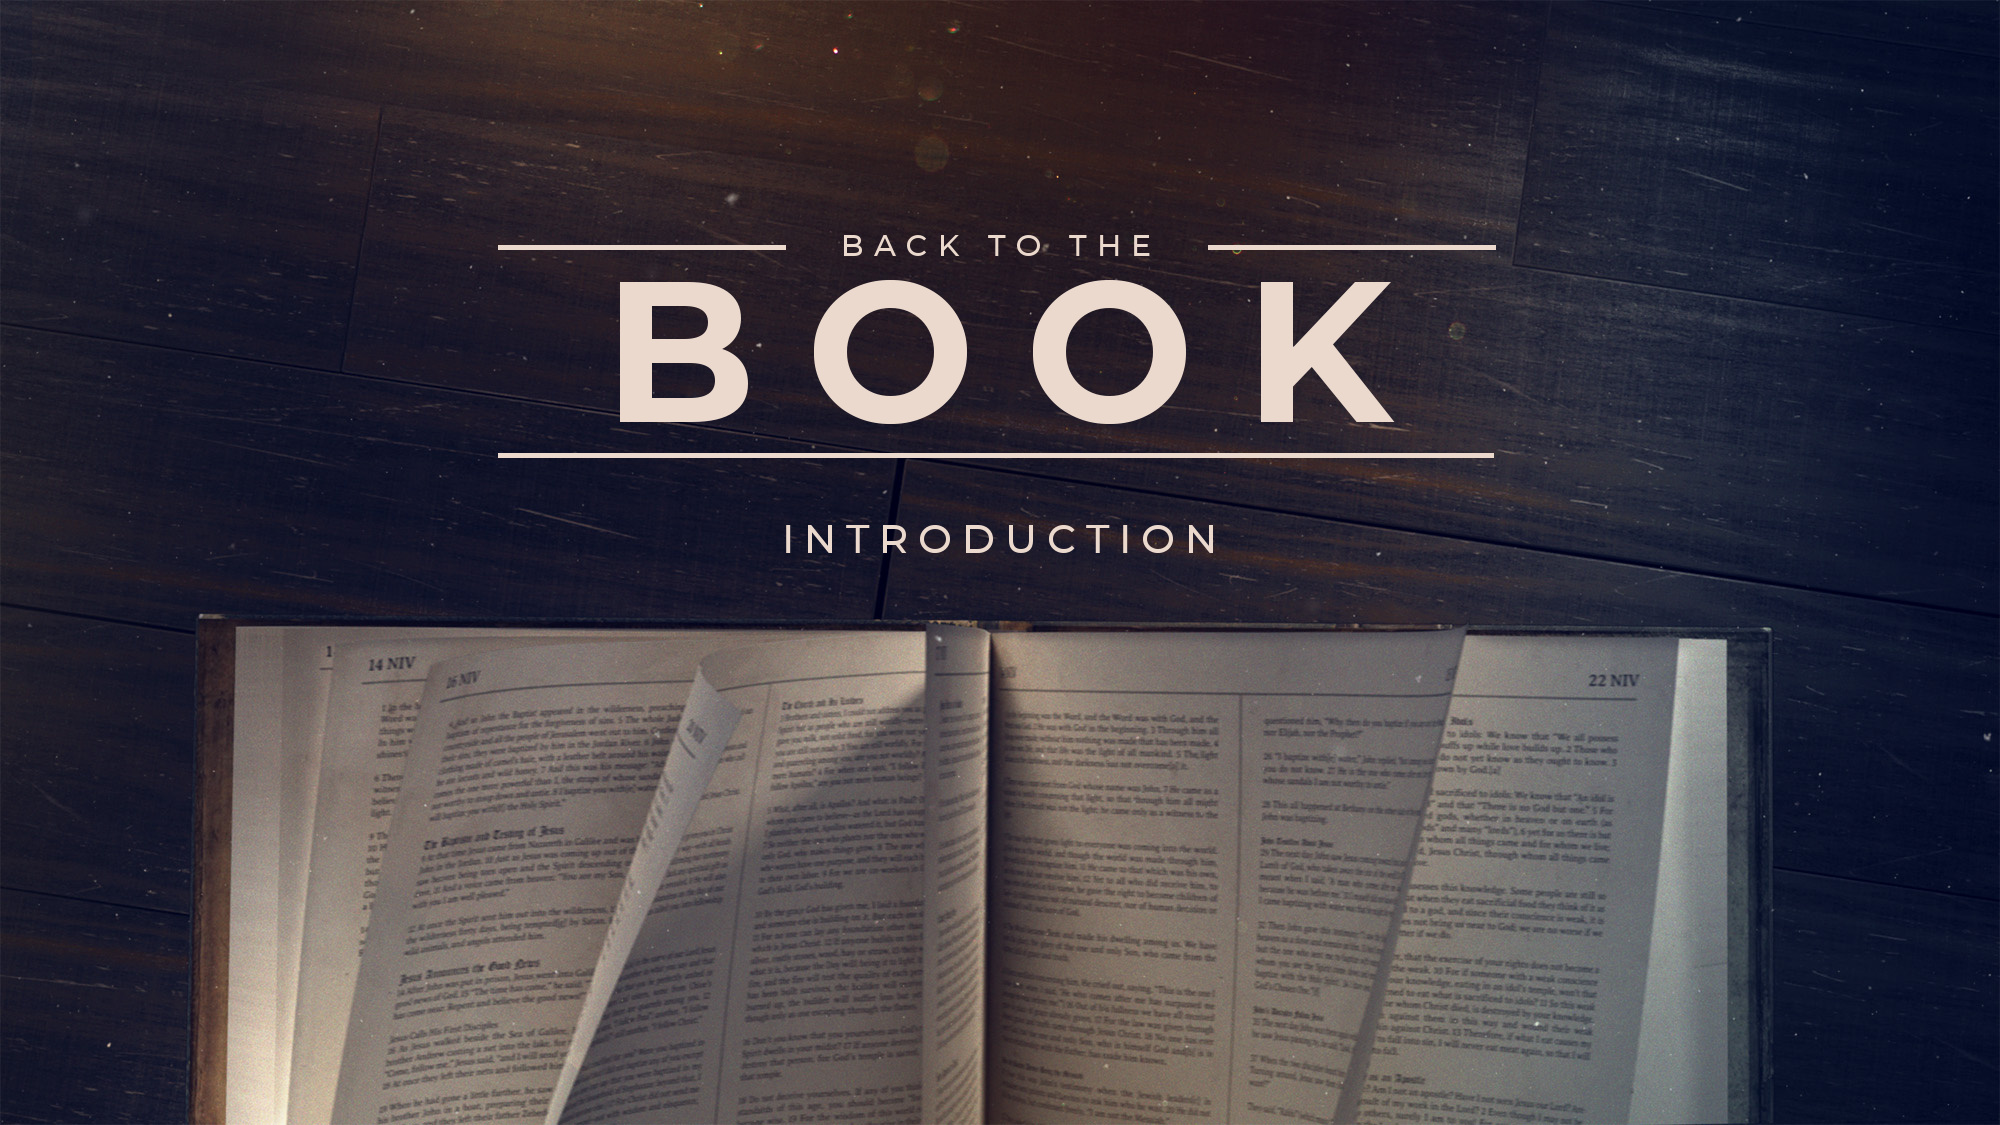 Back to the Book - Introduction